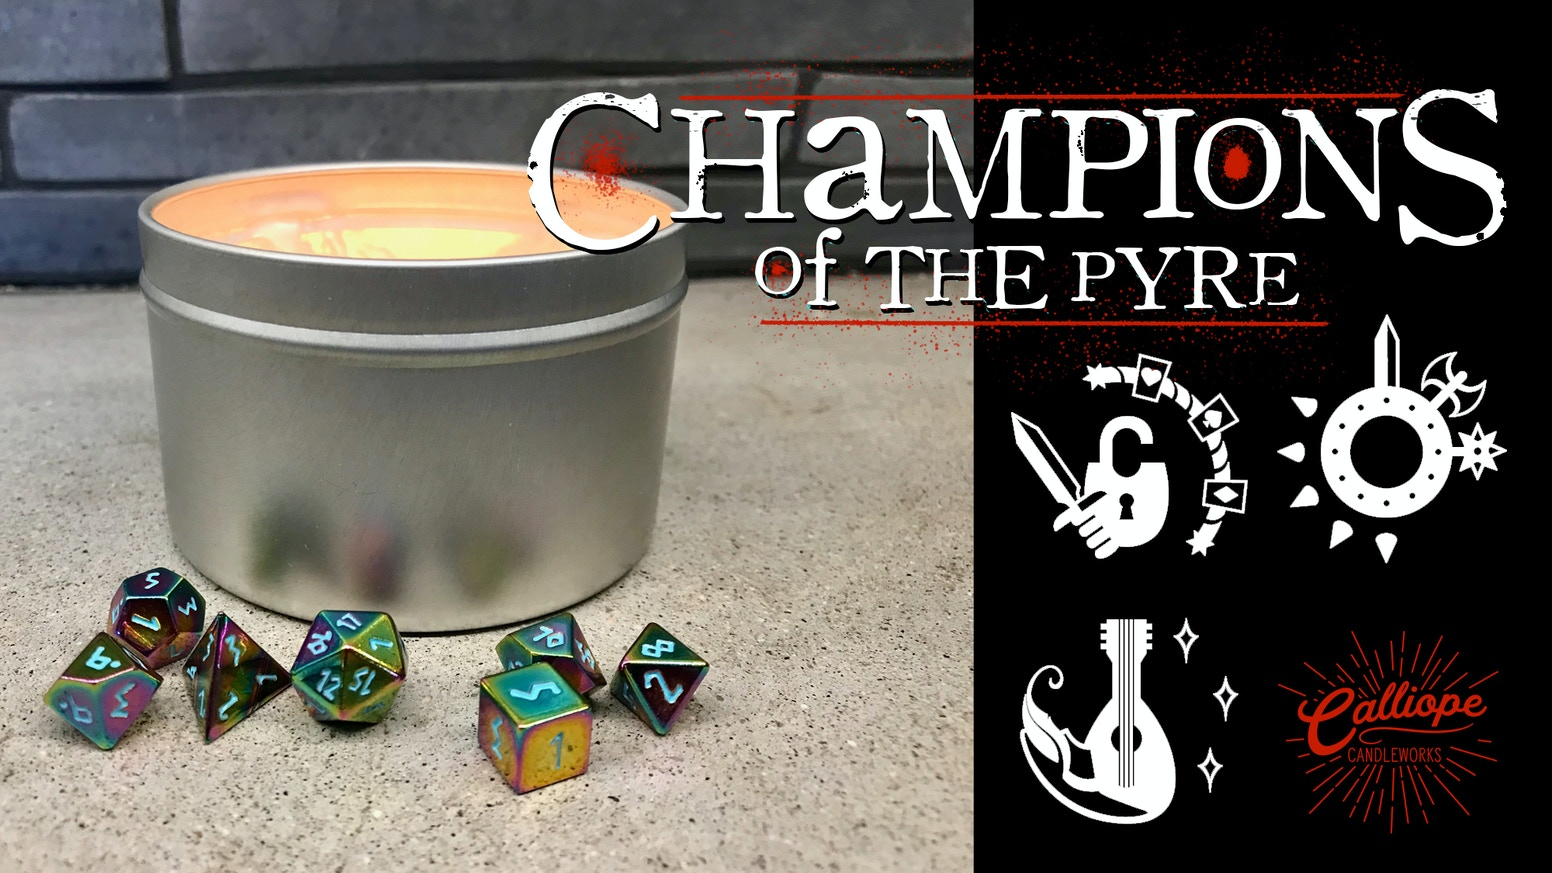 Champions Of The Pyre Candle Set With Embedded Metal Dice By Lauren Rock Kickstarter Norse foundry is raising funds for legacy of mana: champions of the pyre candle set with